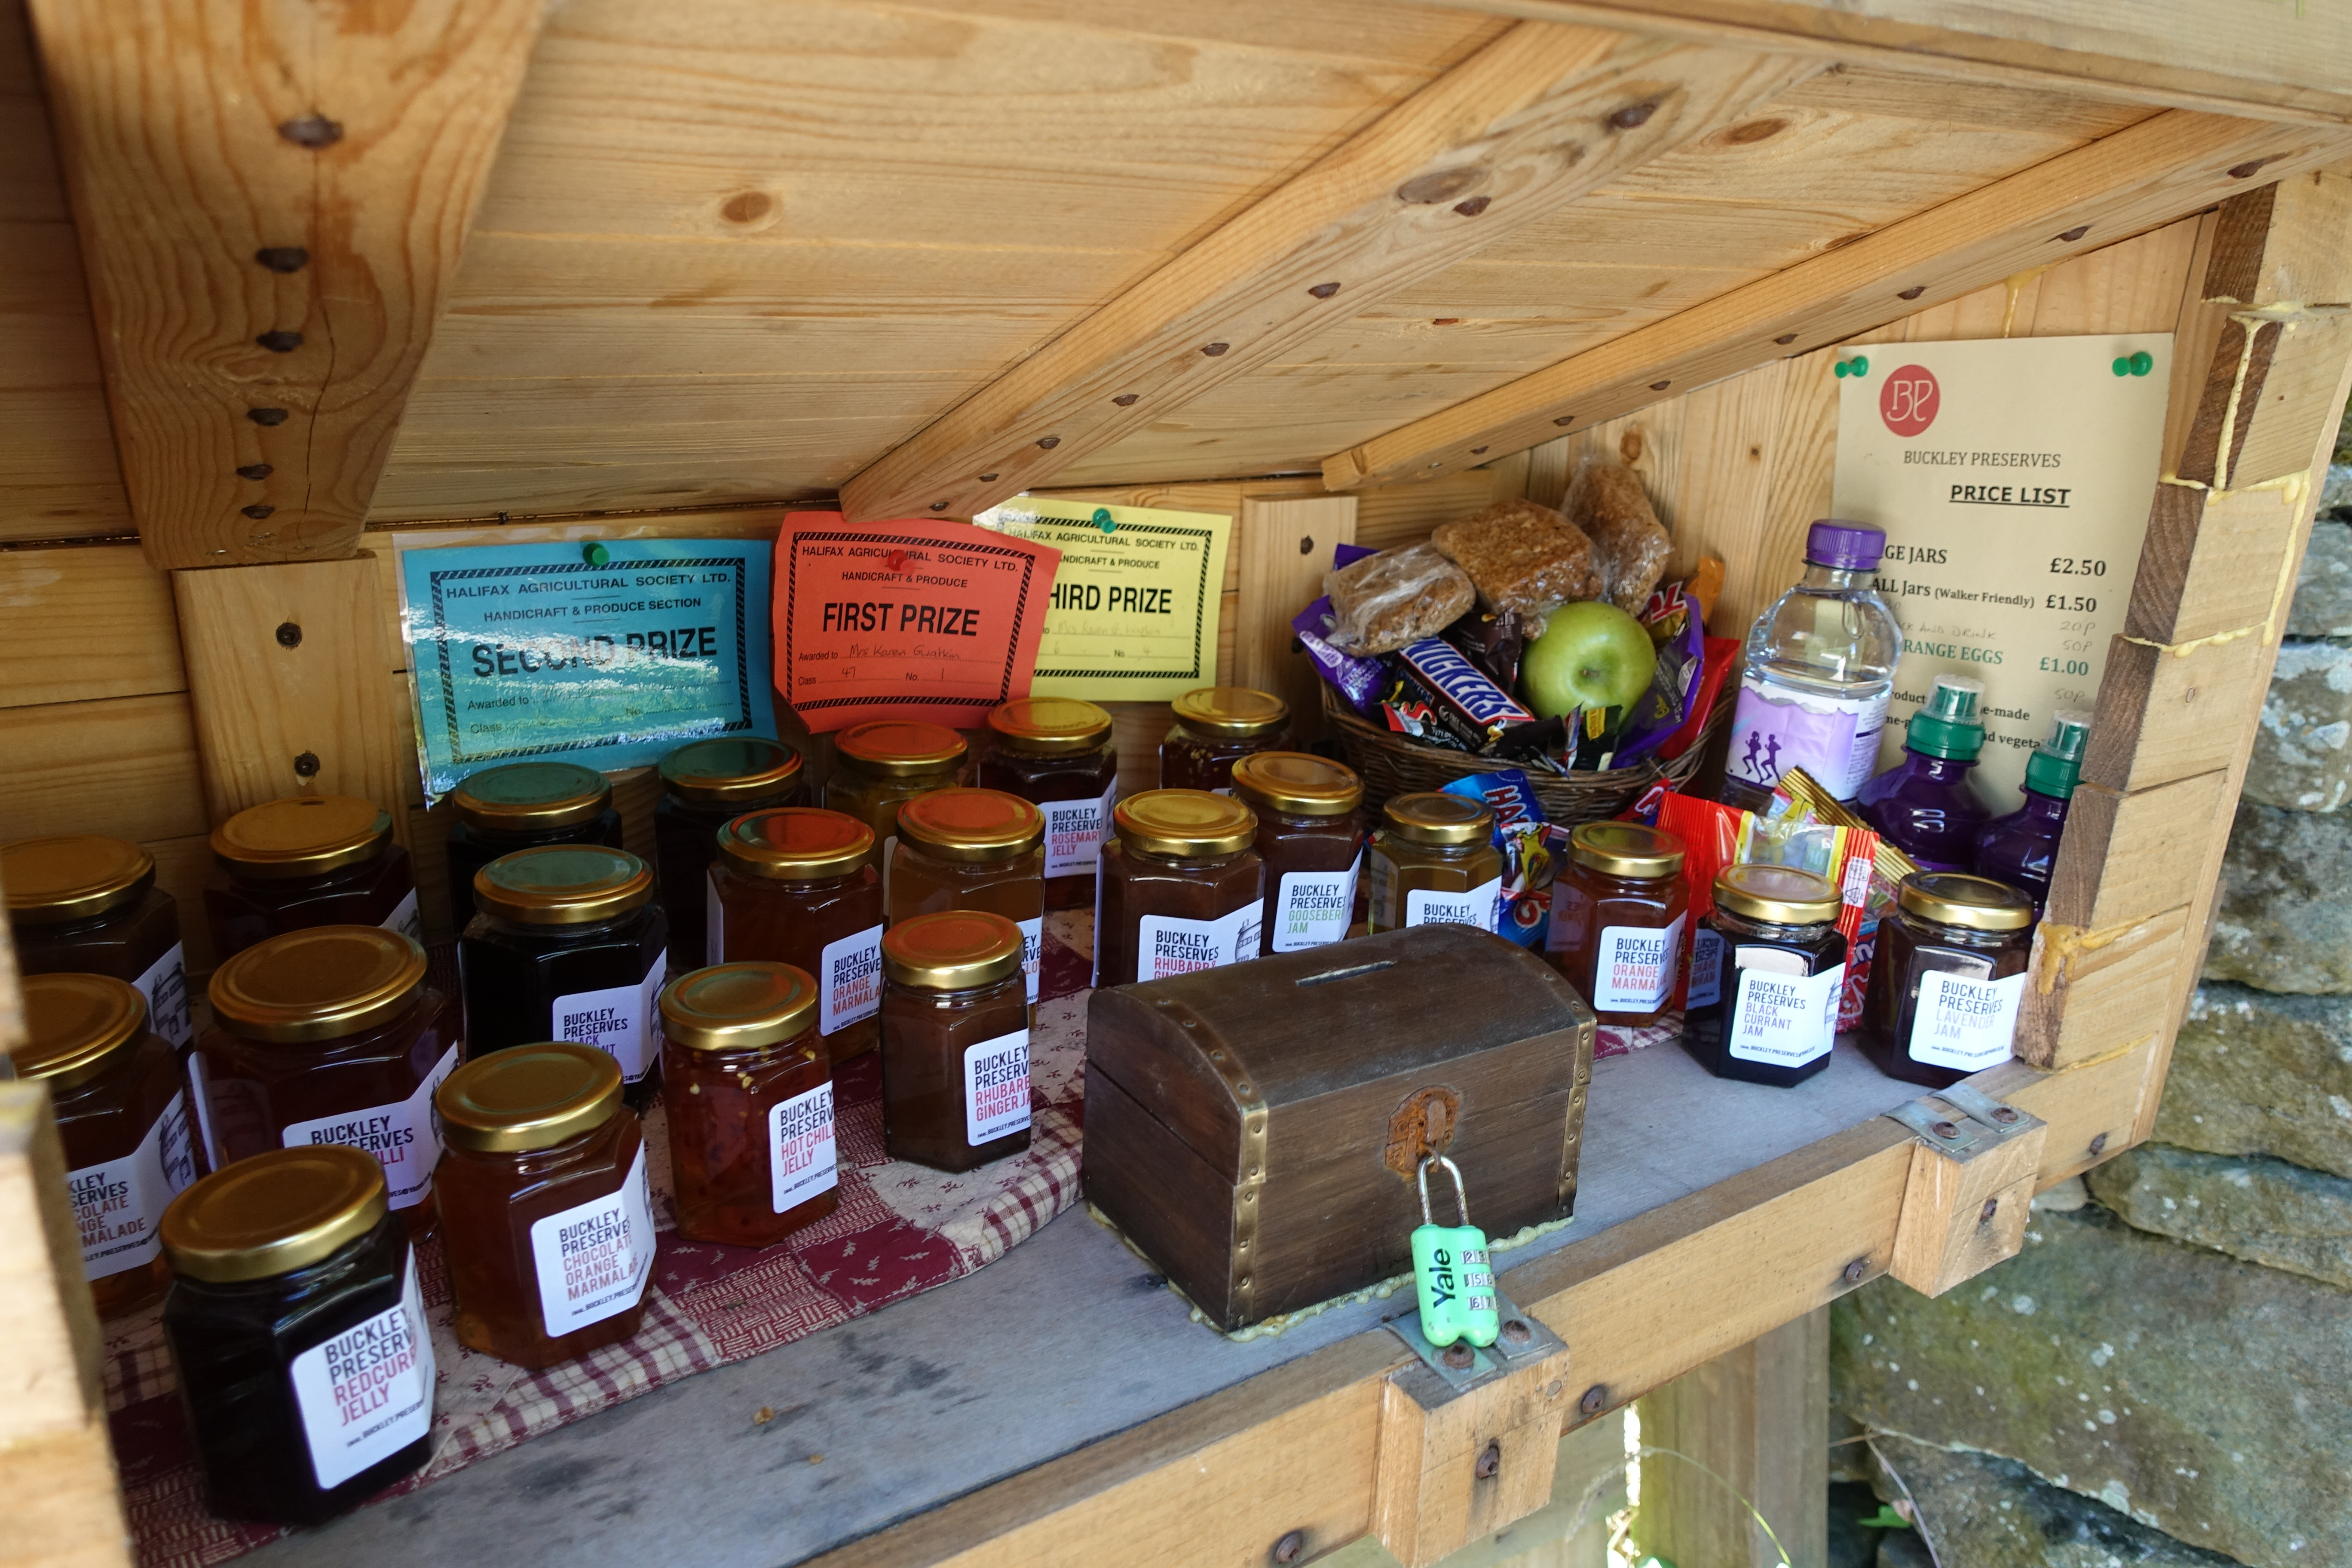 Another Offas's Dyke honesty box, in common with the previous, there is little here of practical use to the hiker